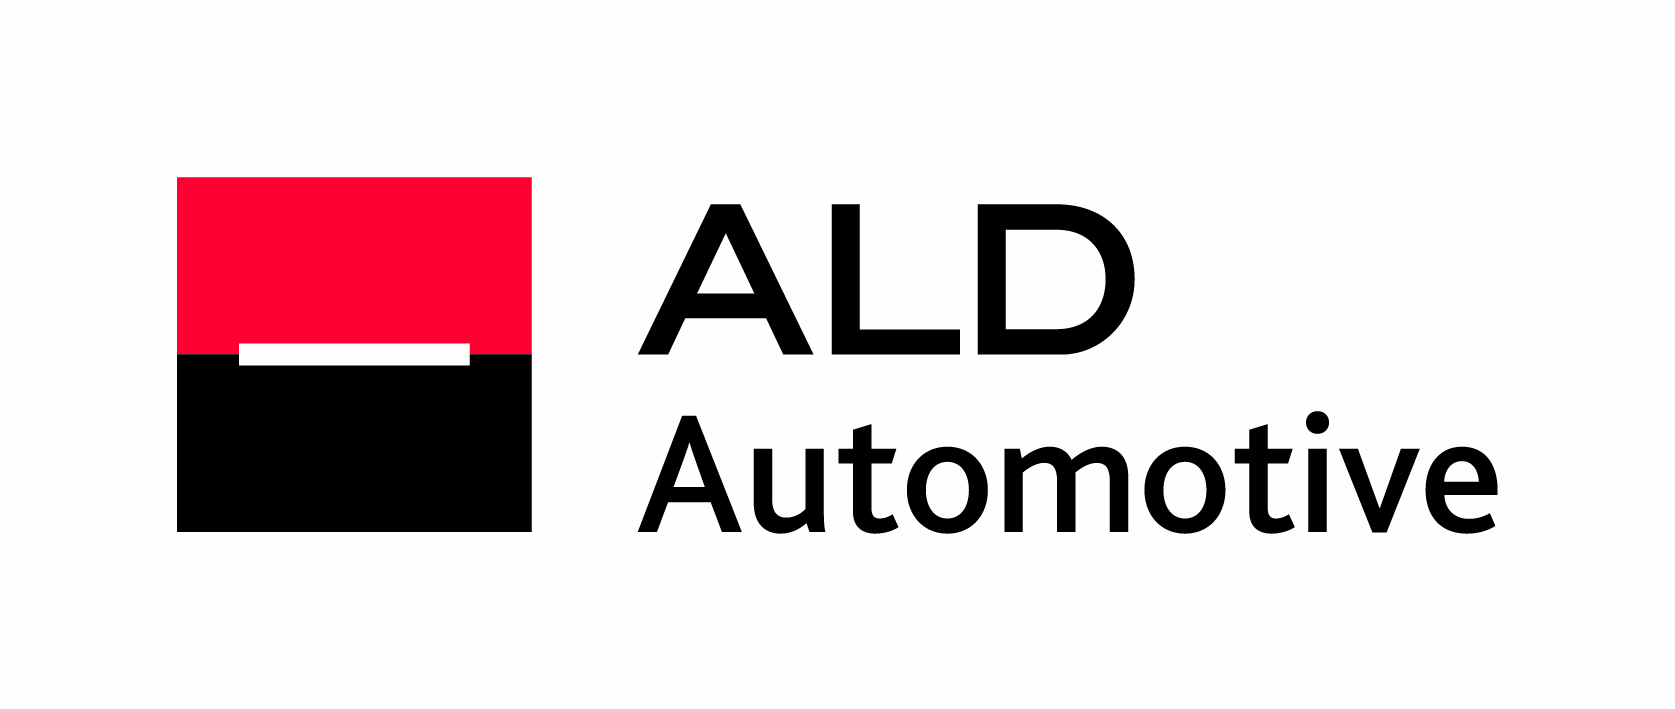 ALD Automotive Italia